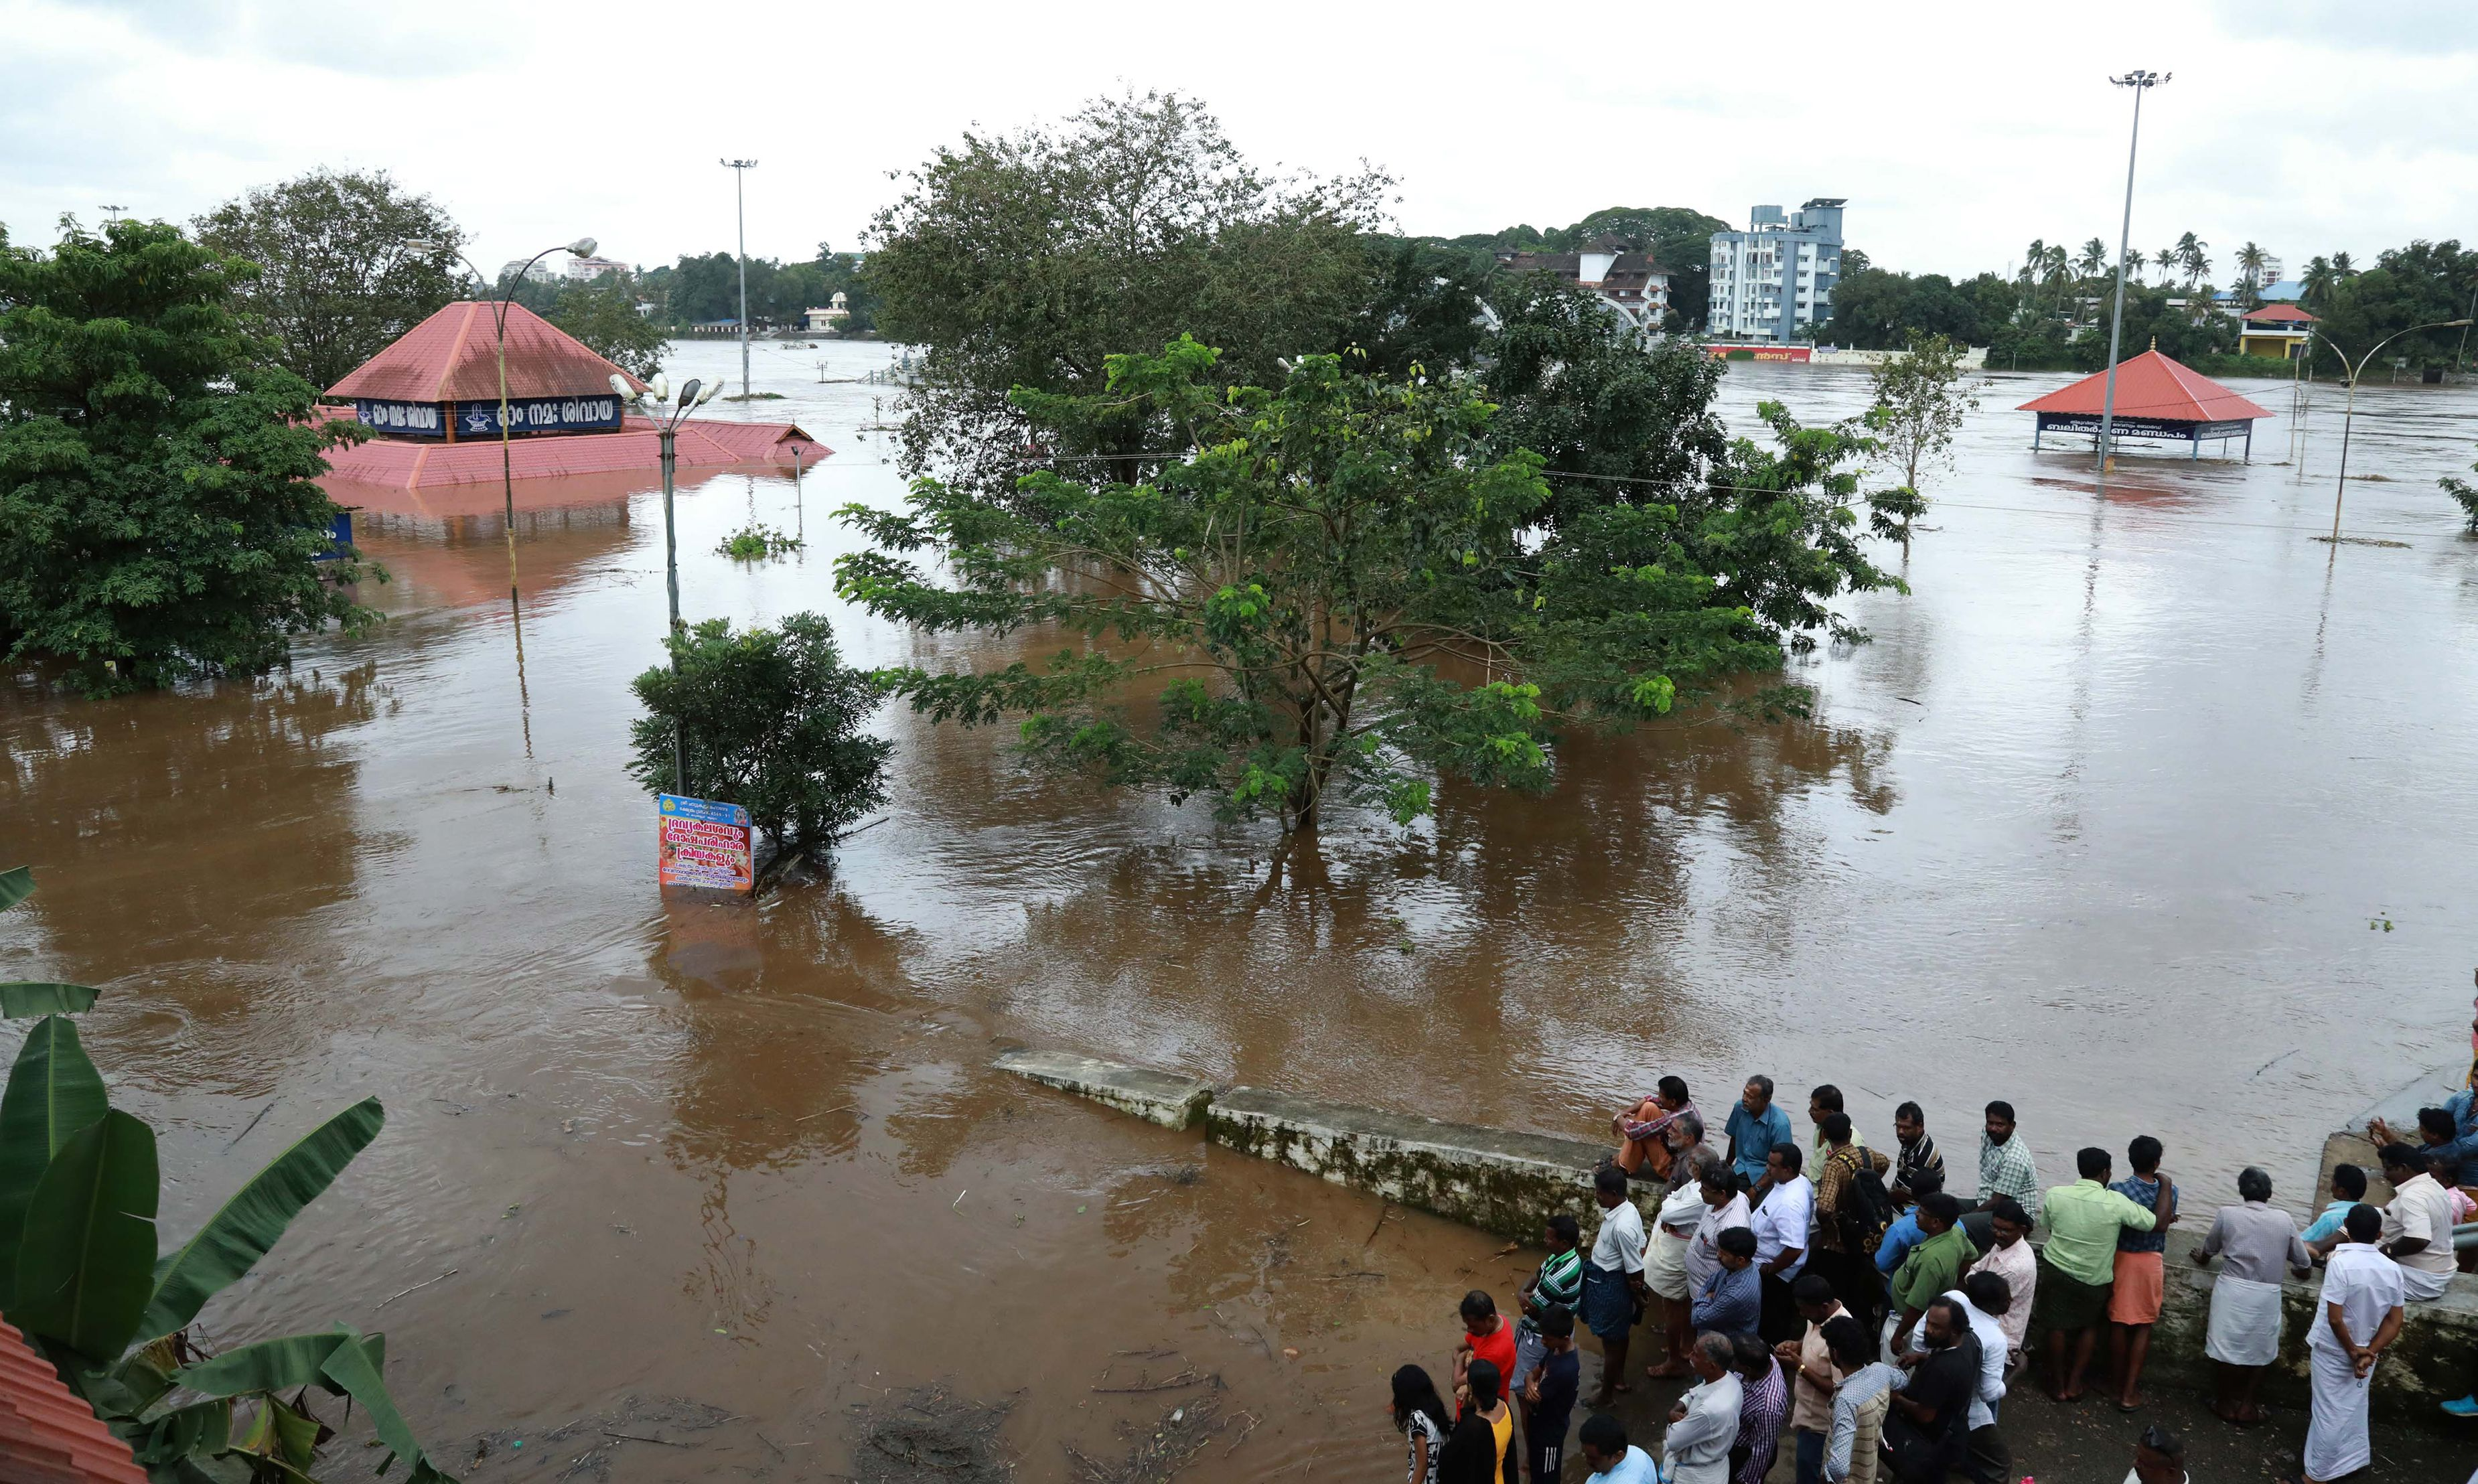 Indian residents look at the Shiva Temple submerged after the release of water from Idamalayar dam following heavy rains in Kochi on Aug. 9, 2018.